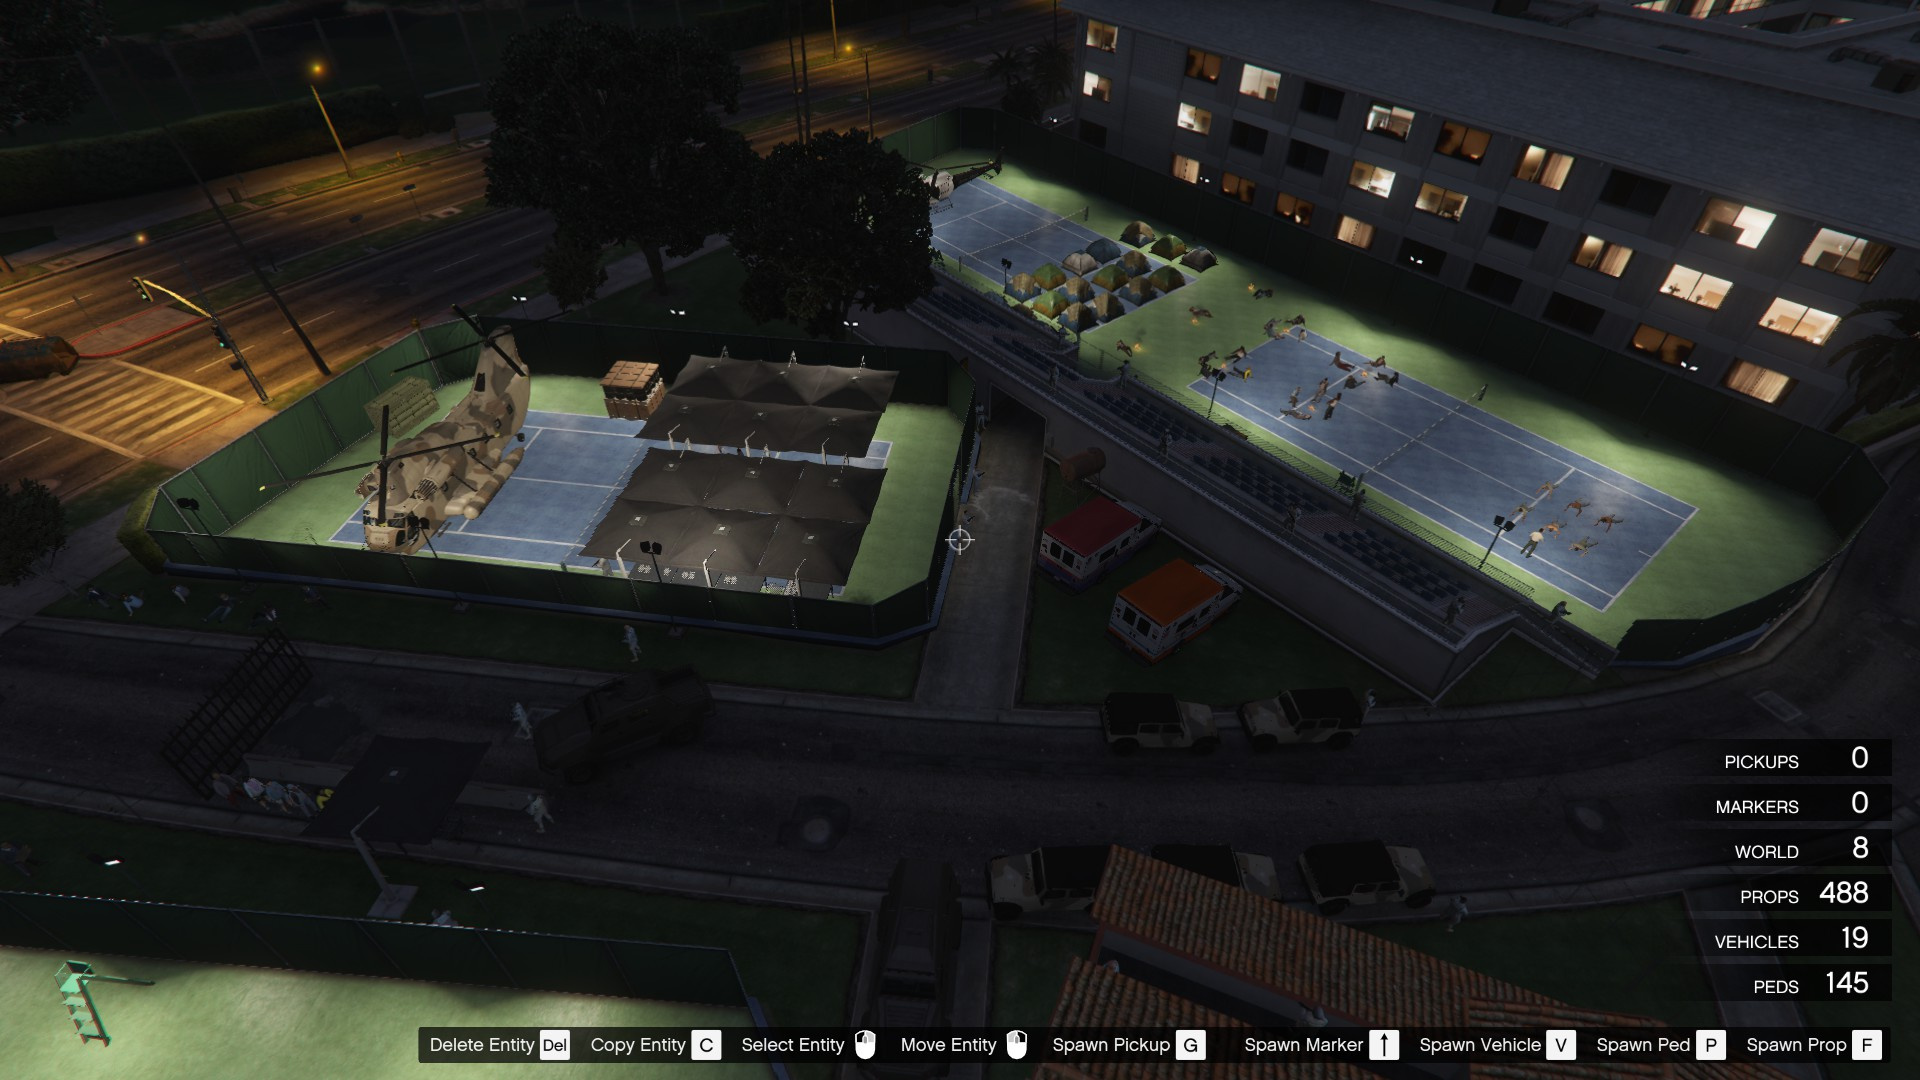 Sick world state vs merryweather camps map editor gta5 mods be9ec4 20180212182605 1 gumiabroncs Image collections